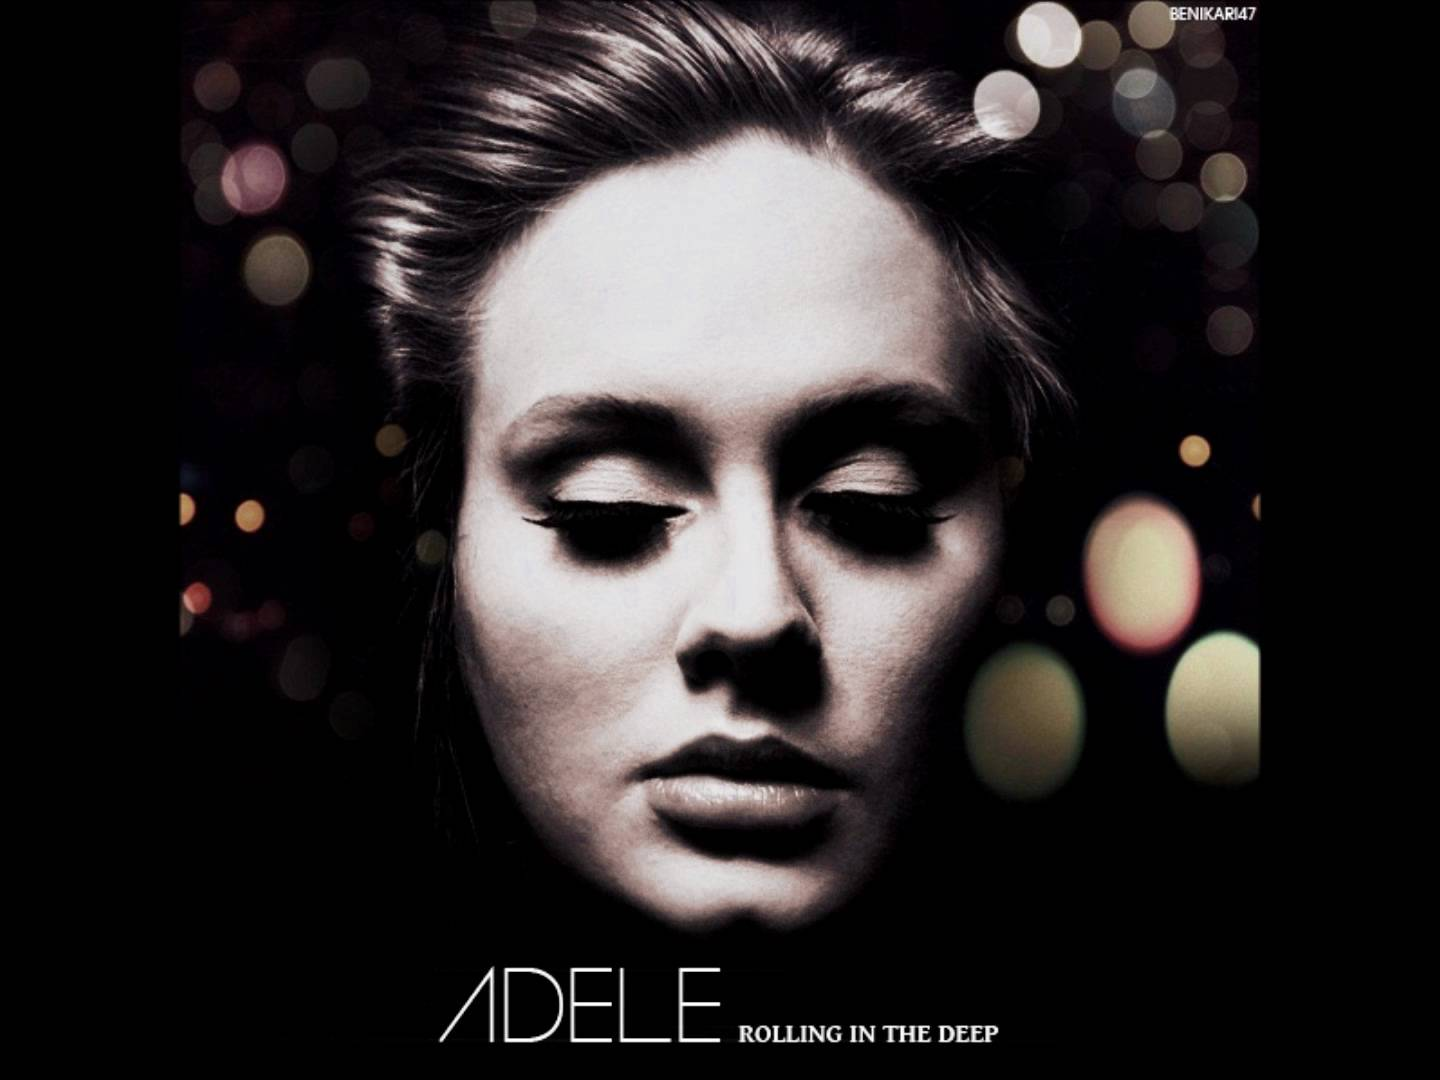 adele we could have had it all mp3 free download